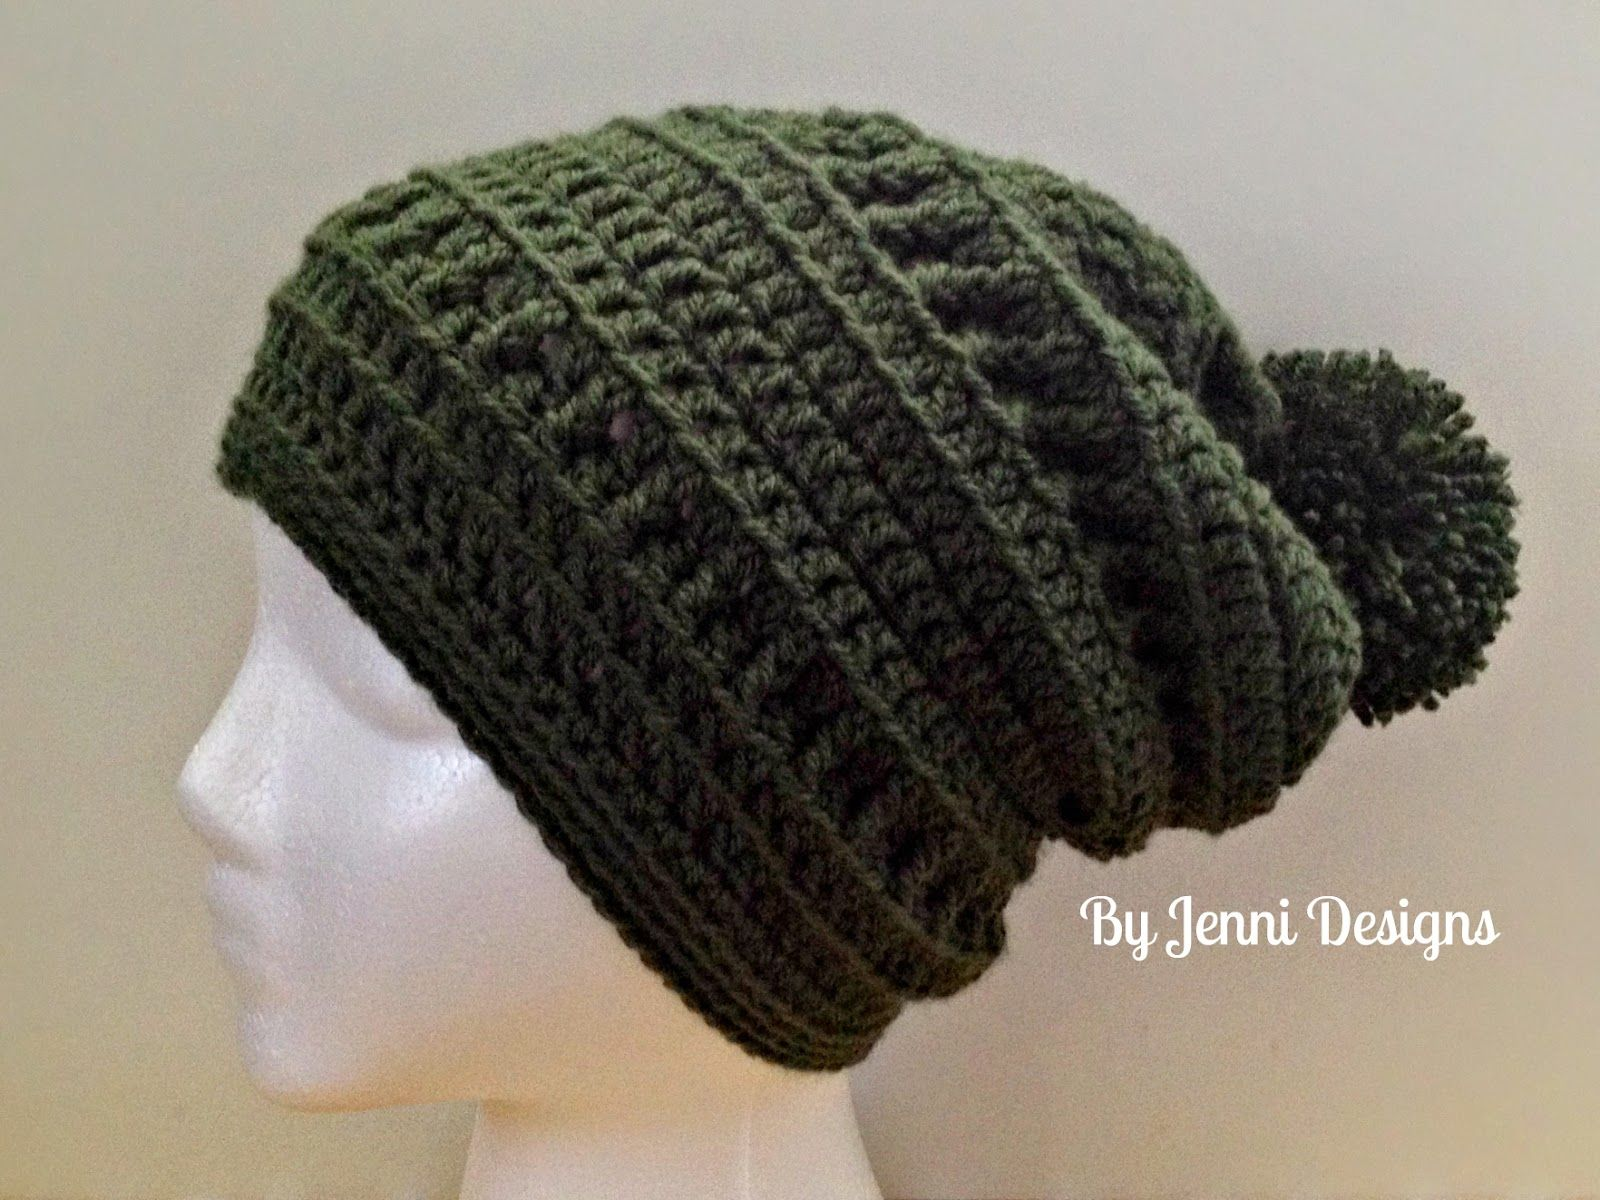 Crochet Hat Free Pattern Woman : By Jenni Designs: Slouchy Textured Beanie (womens size ...